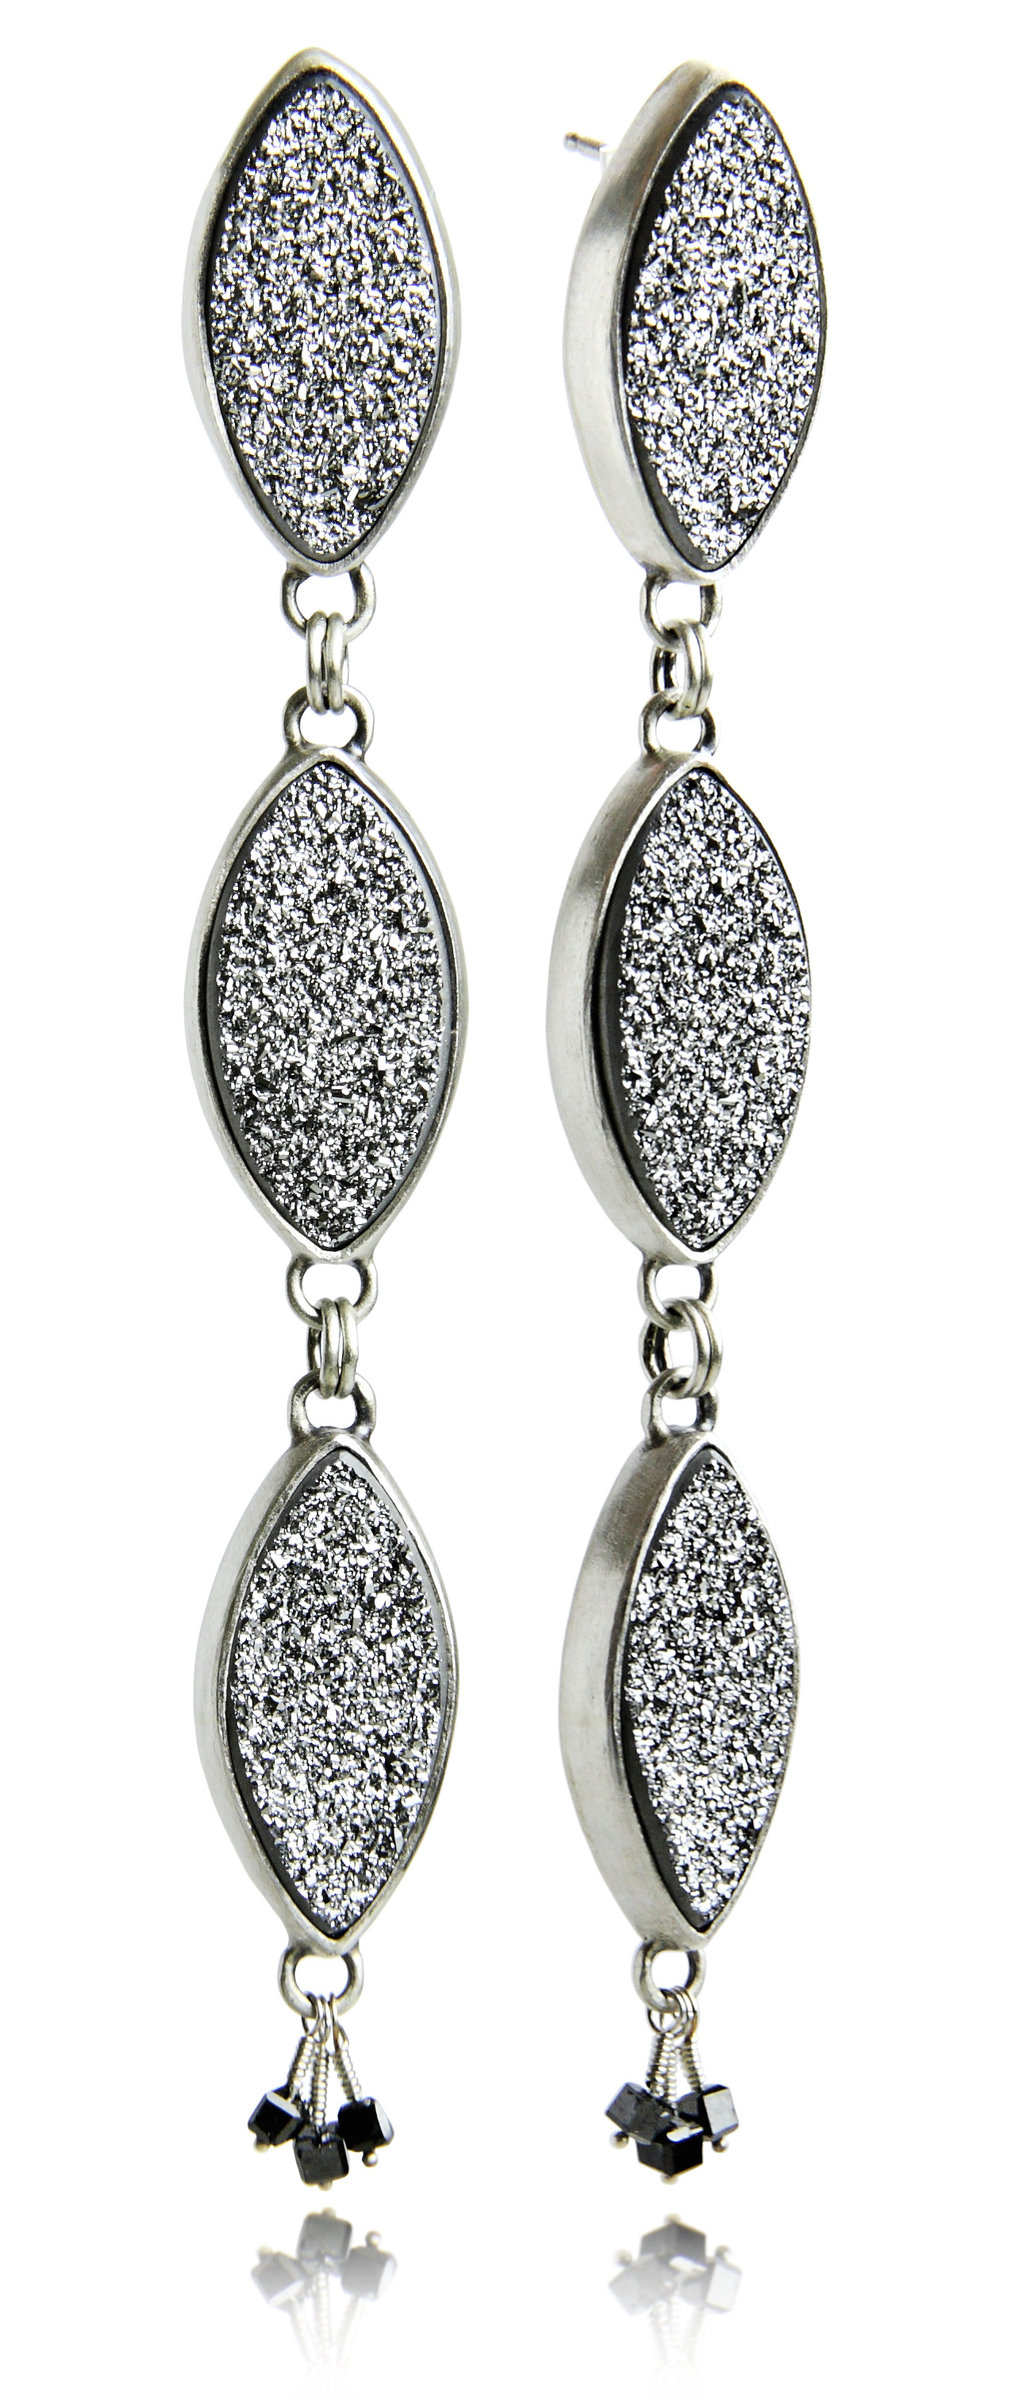 Sterling Silver, Druzy, and Black Diamond 3 Leaf Earrings